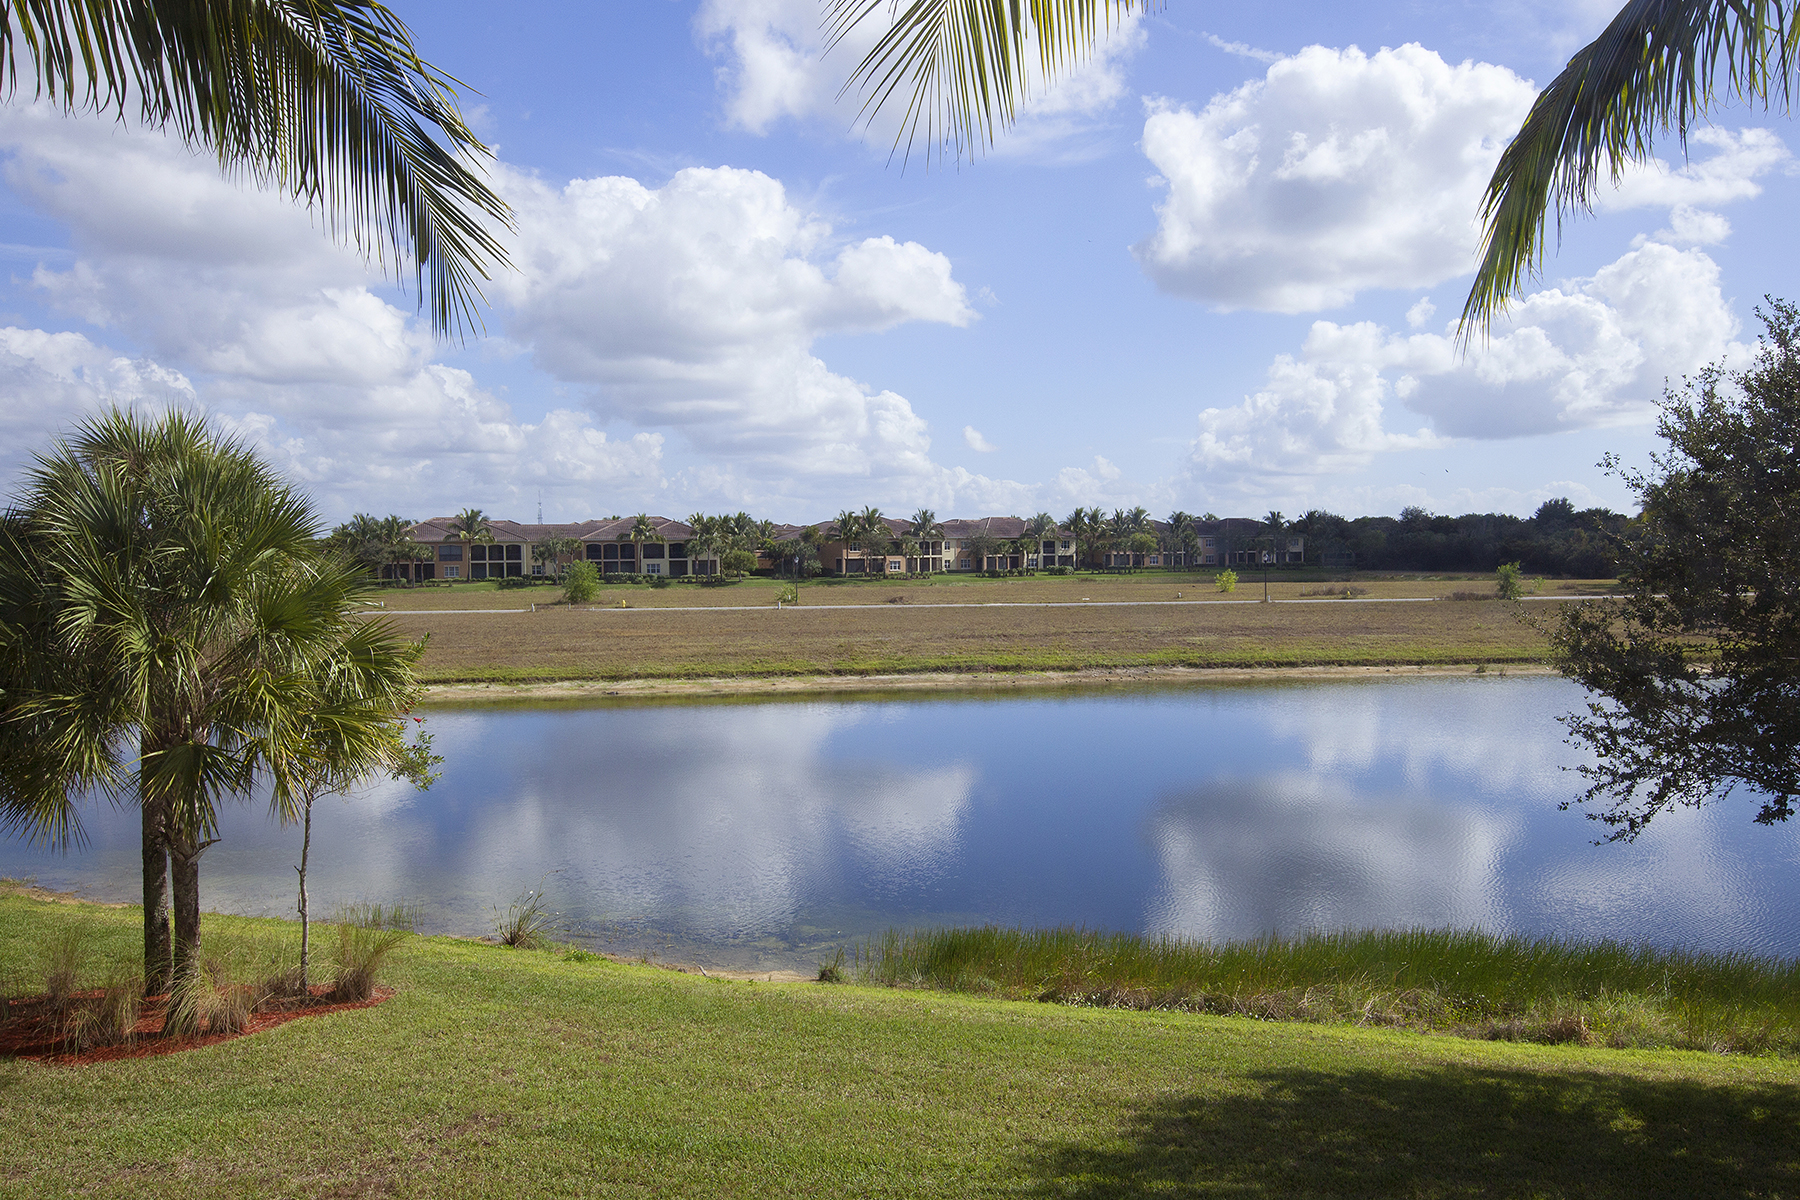 Condominium for Sale at FIDDLERS CREEK 3198 Serenity Ct 201 Naples, Florida, 34114 United States